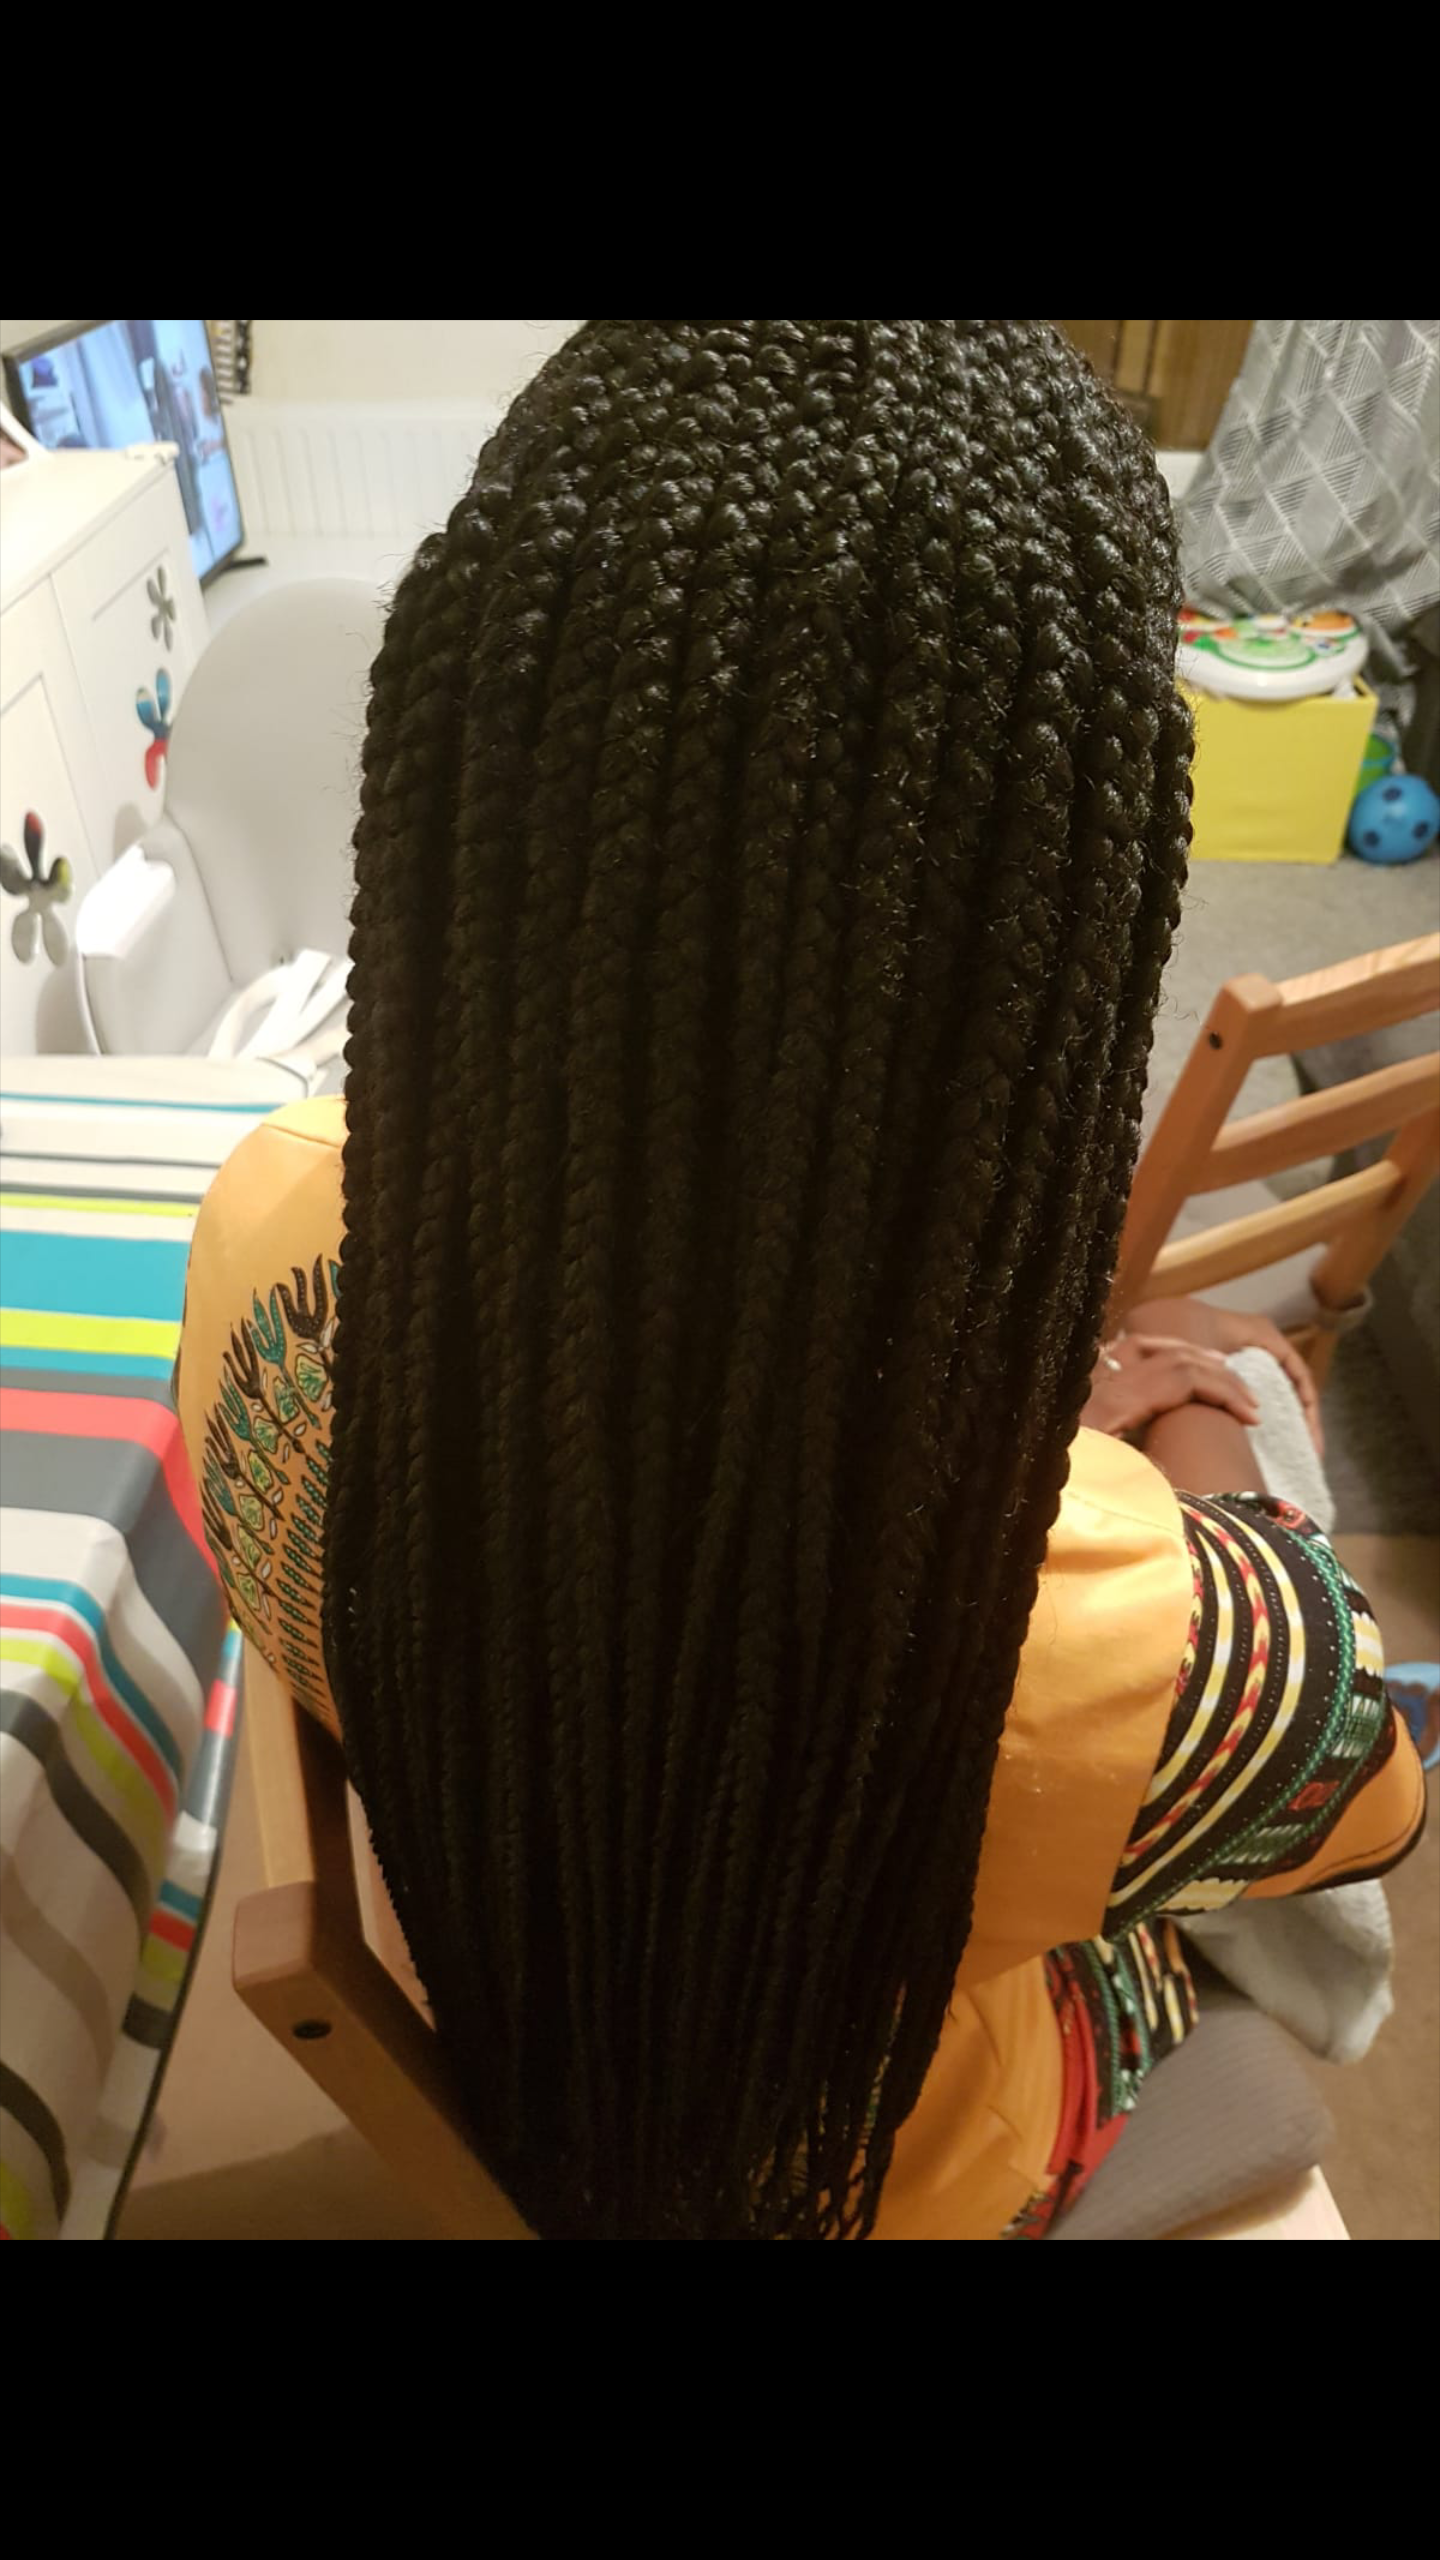 salon de coiffure afro tresse tresses box braids crochet braids vanilles tissages paris 75 77 78 91 92 93 94 95 LEPMTCEH